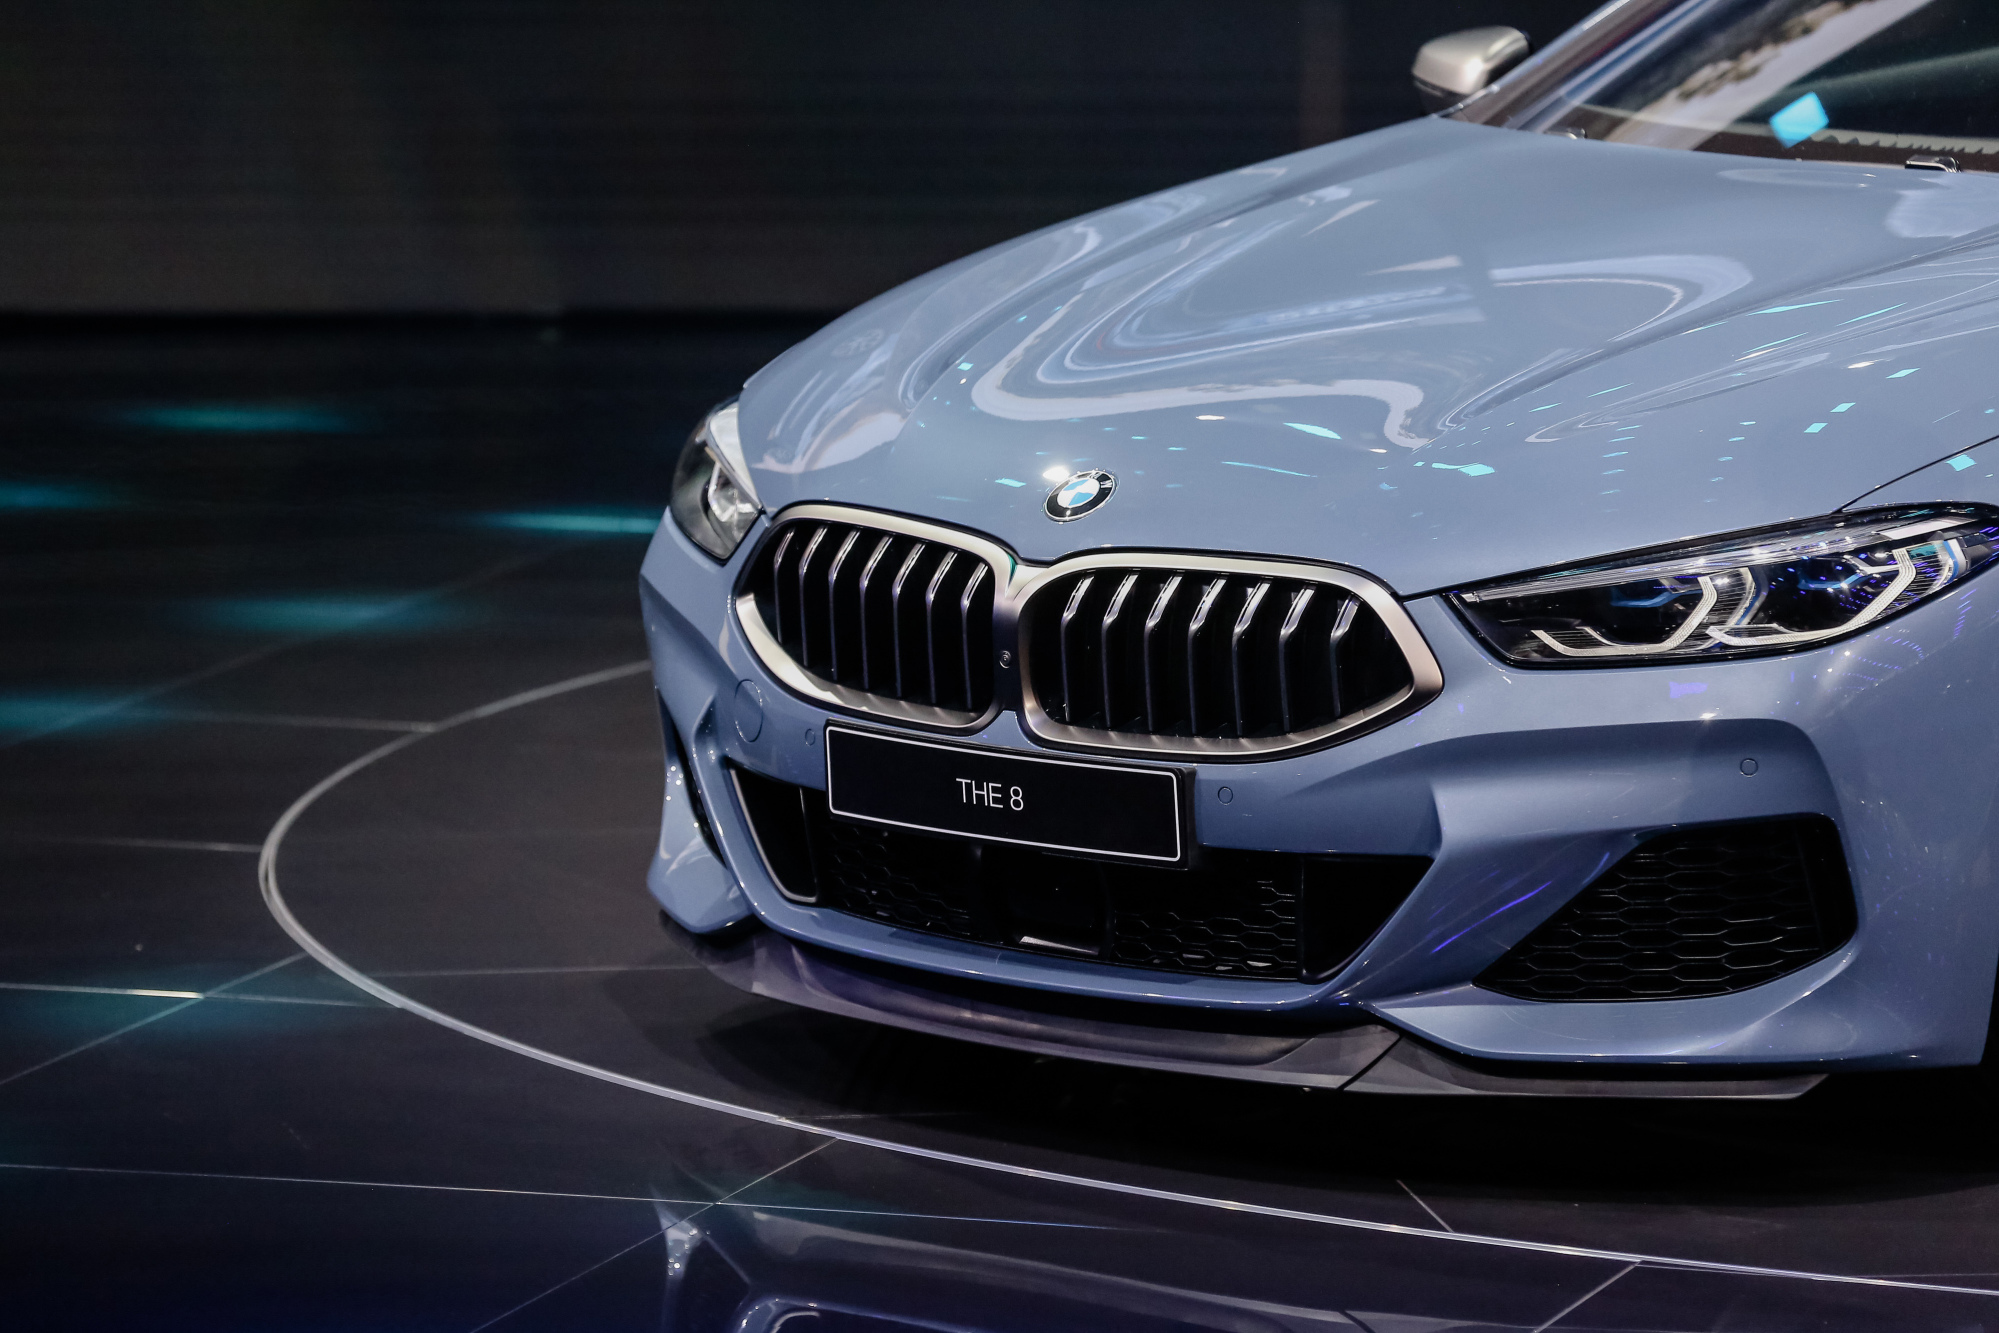 Bmw Strikes Downbeat Tone For 2019 After Carmaking Profits Halve